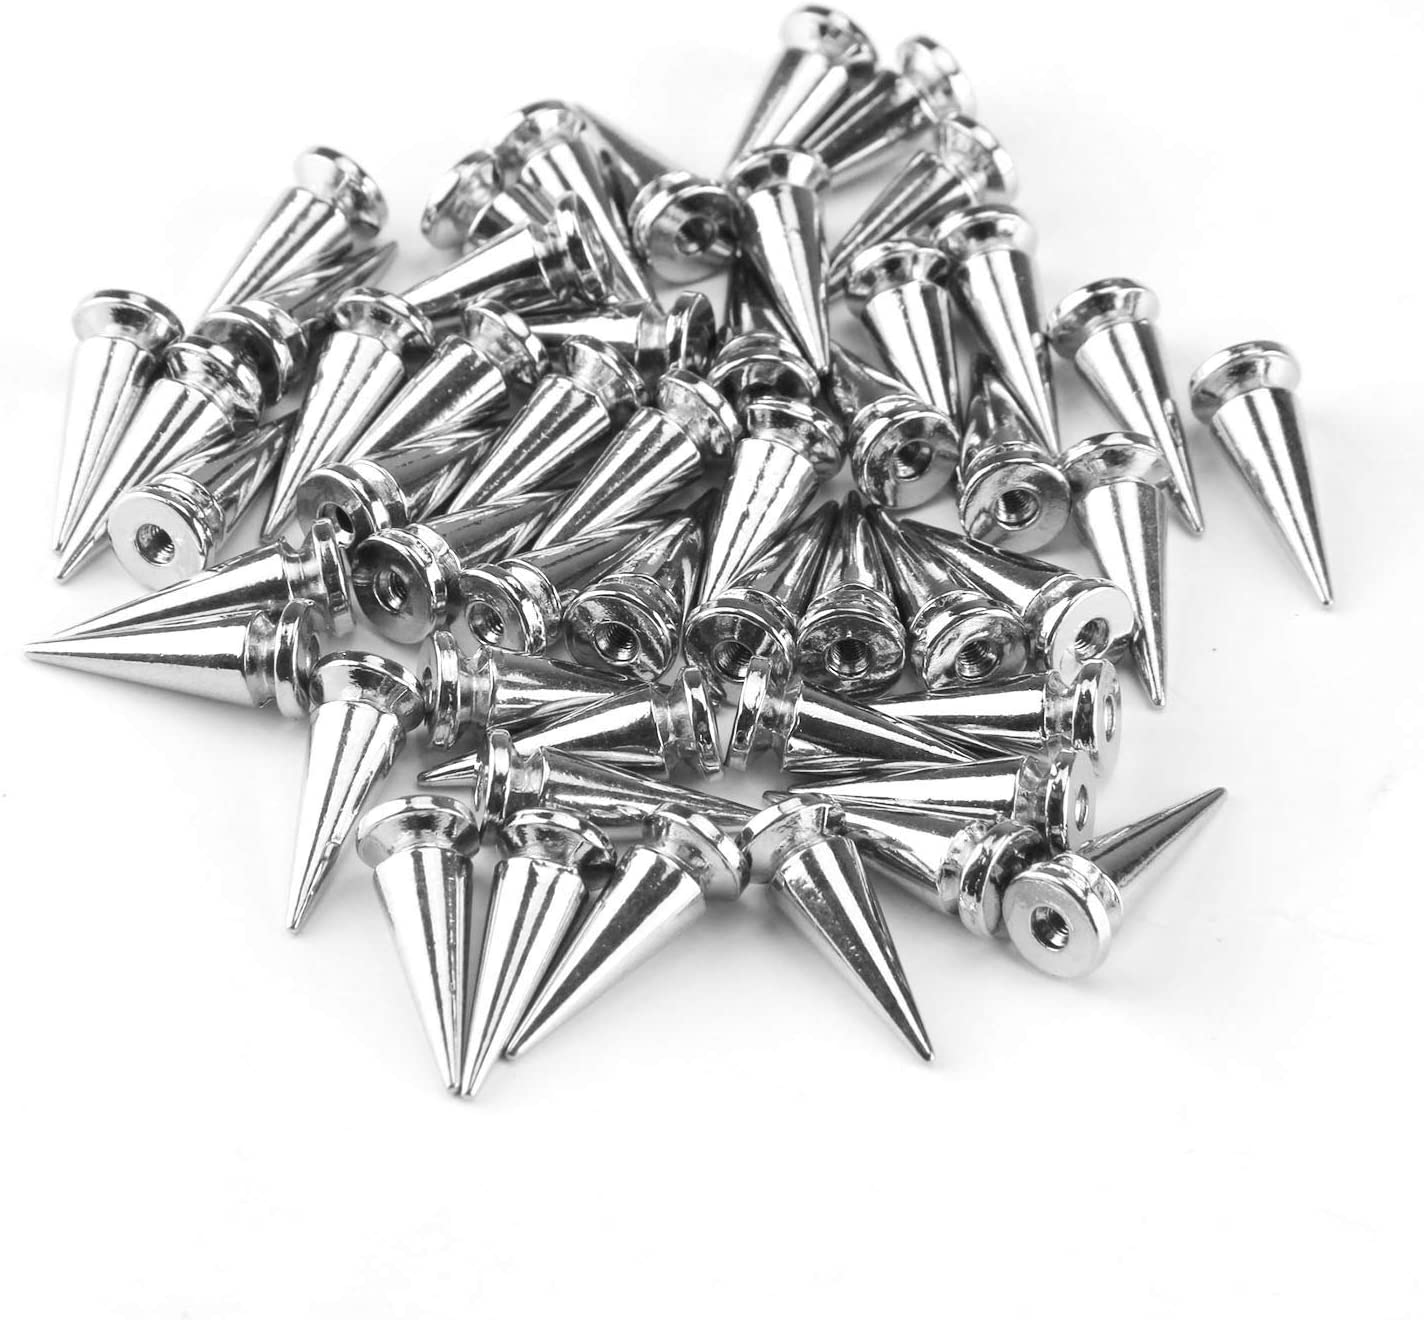 50PCS 10x25mm Alloy Bullet-Shaped Stud Spike Rivets for DIY Craft Leather Necklace Bags Shoes Jackets Belts